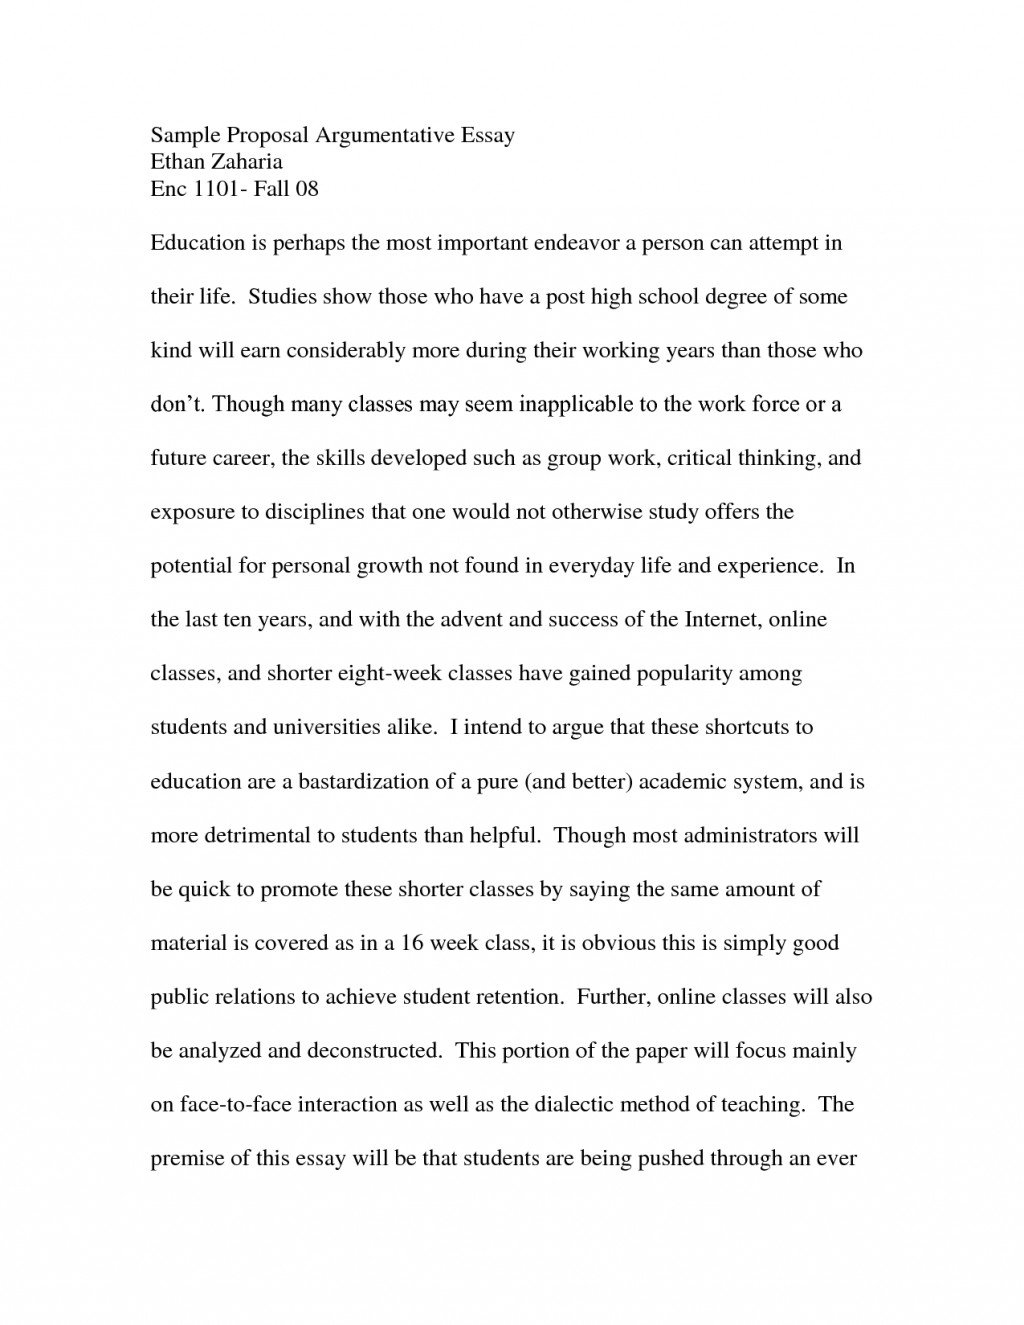 016 Essay Example 3d7hsocgst How To Write Claim For Astounding A An And Support Of Value Policy Large